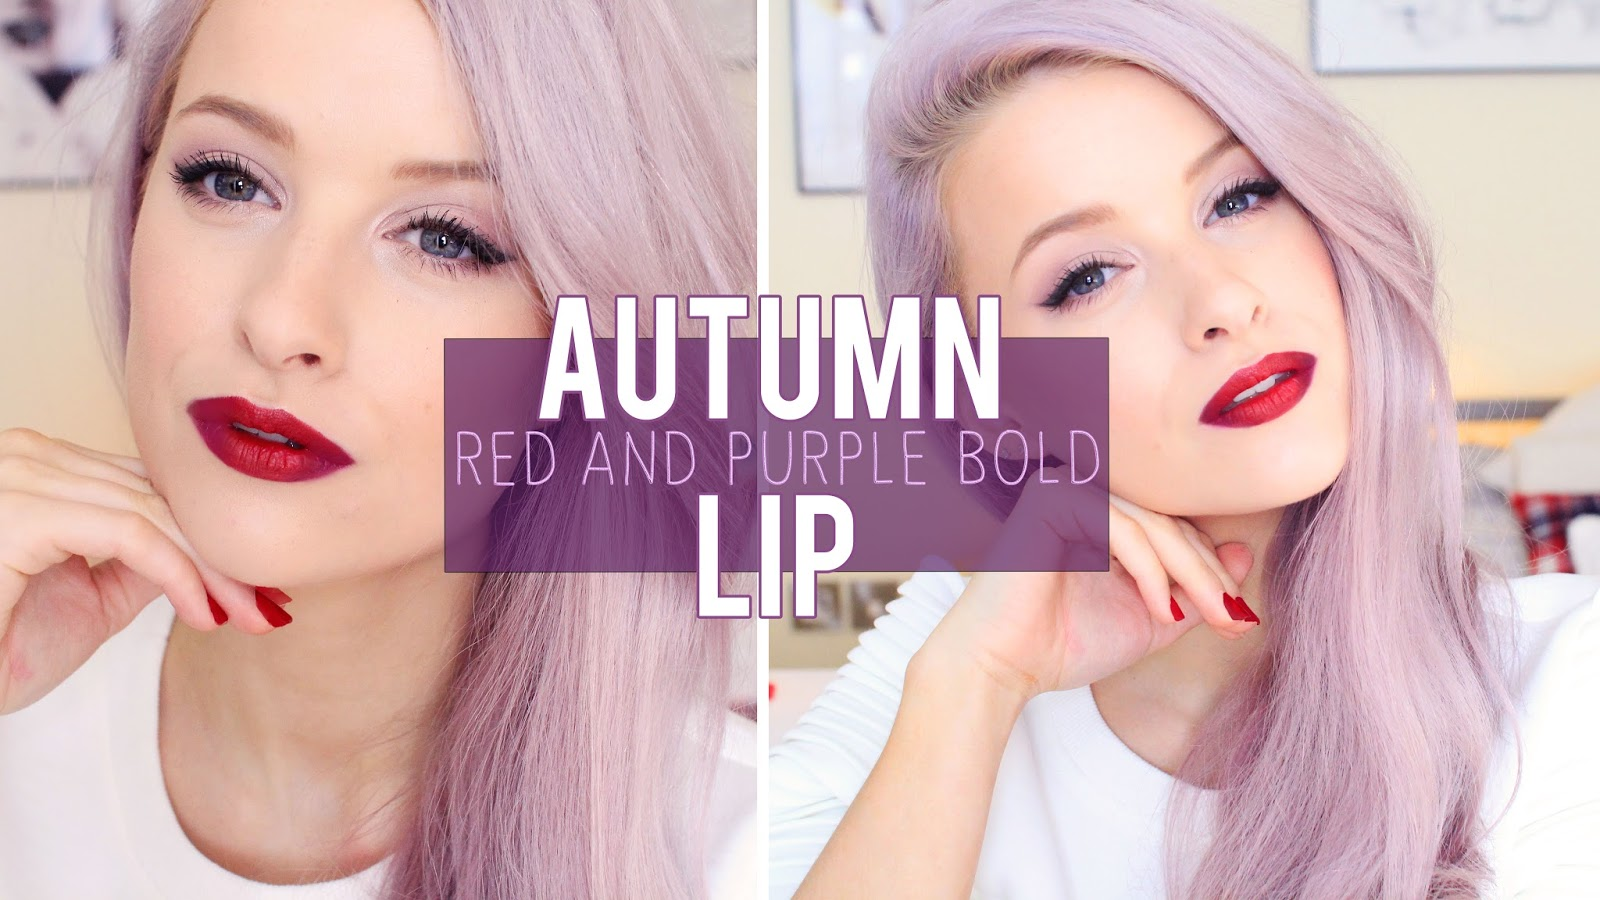 How To: The Bold Red and Purple Autumn Lip